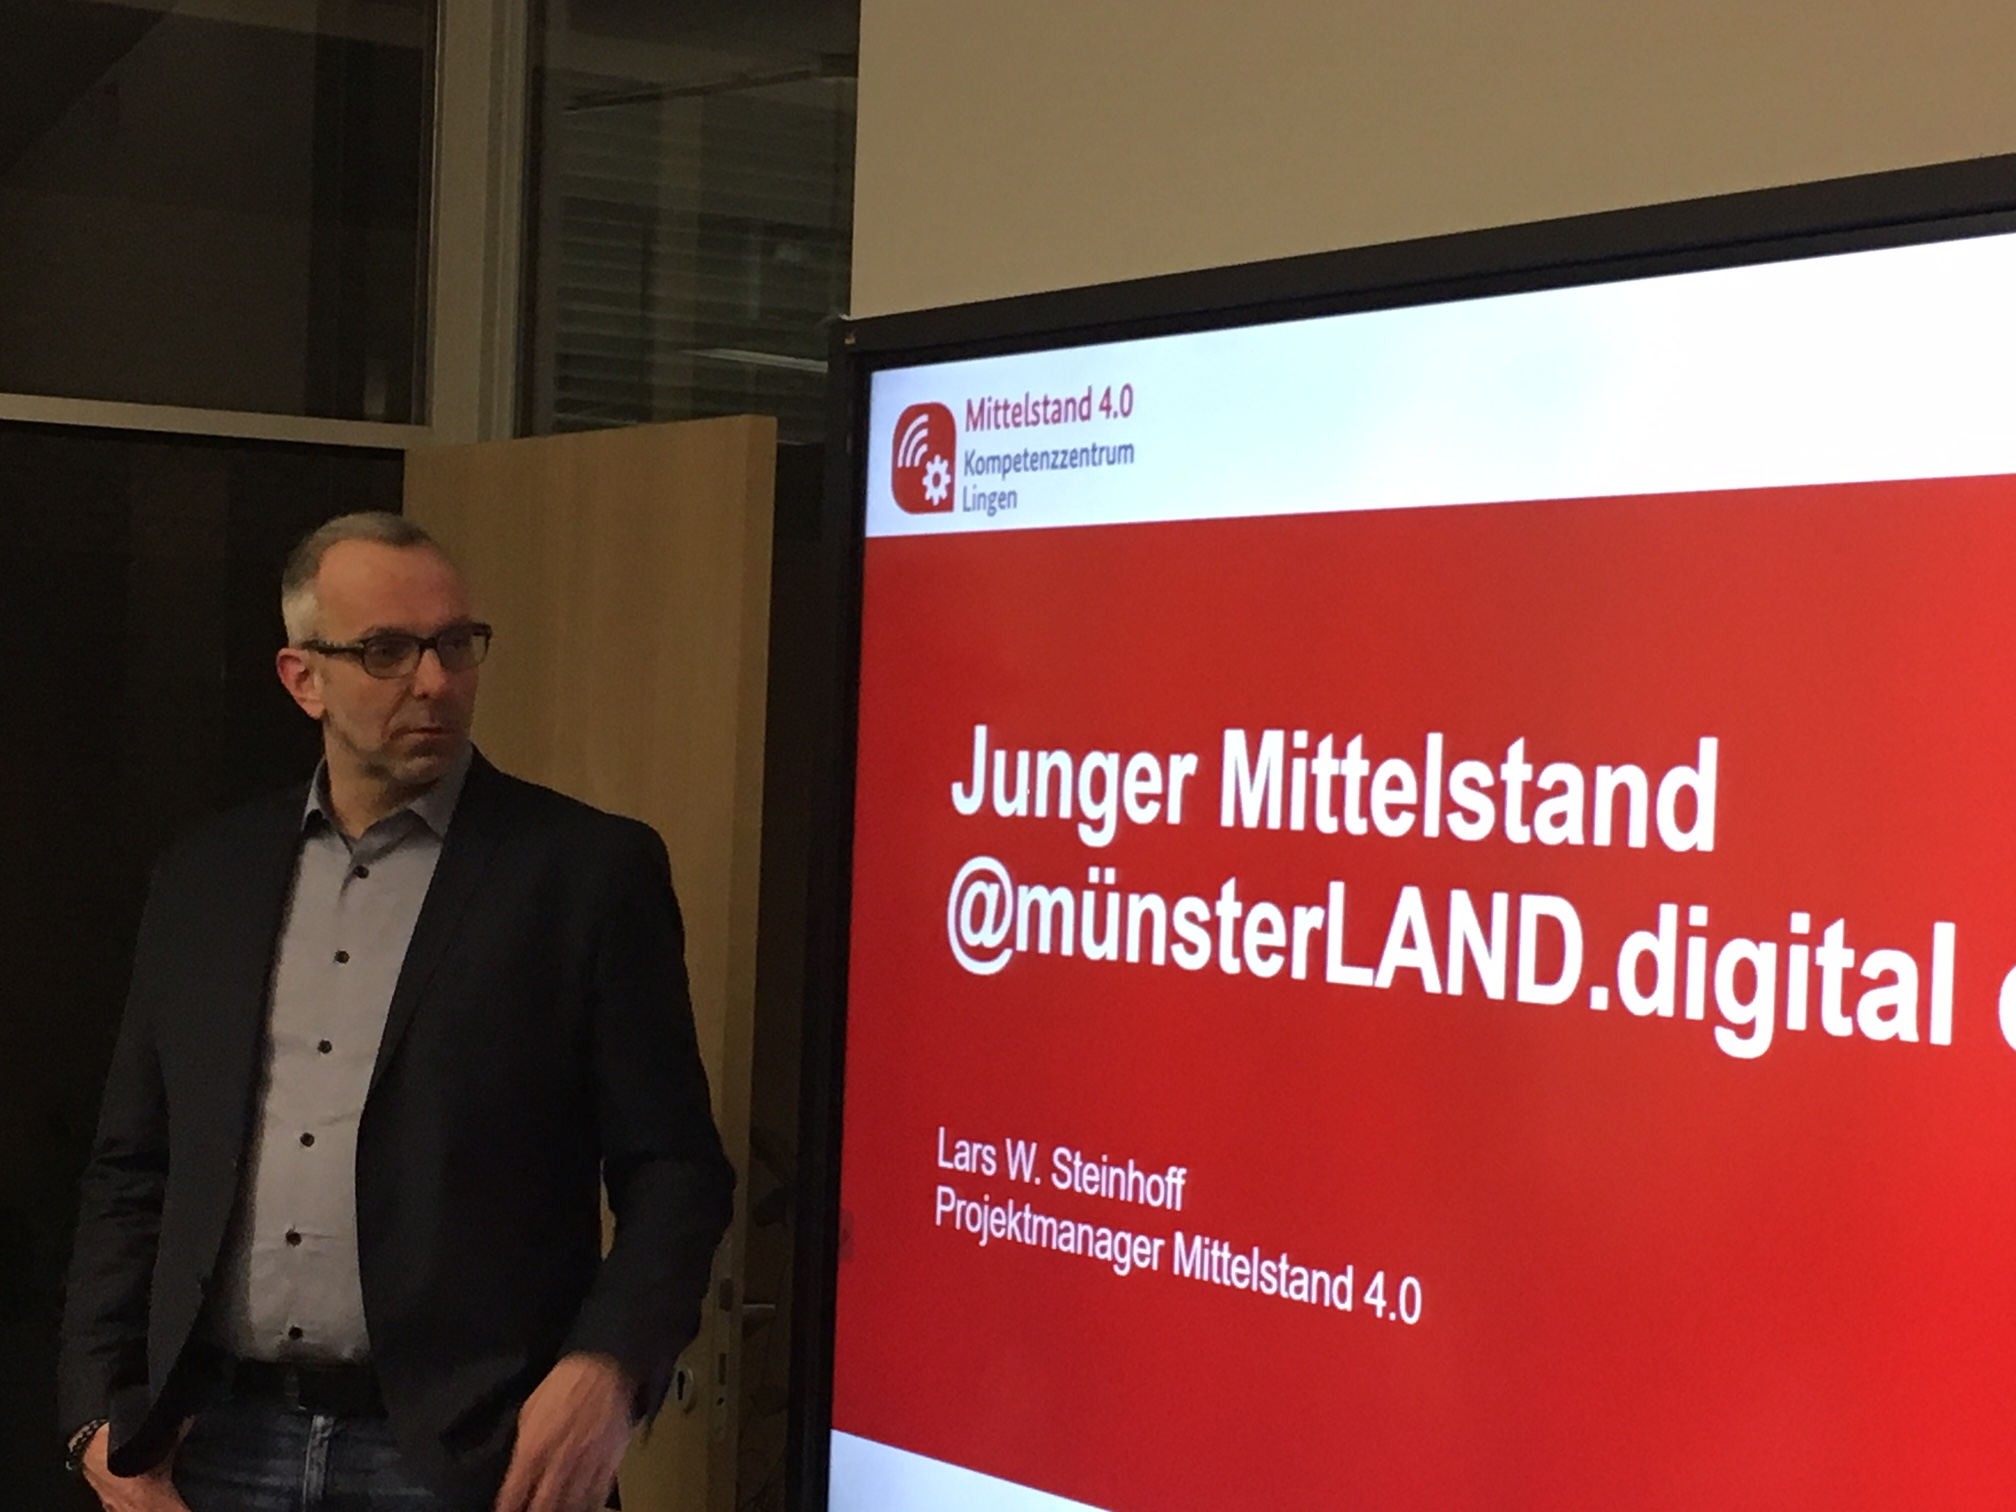 JungerMittelstand@MuensterLand.digital